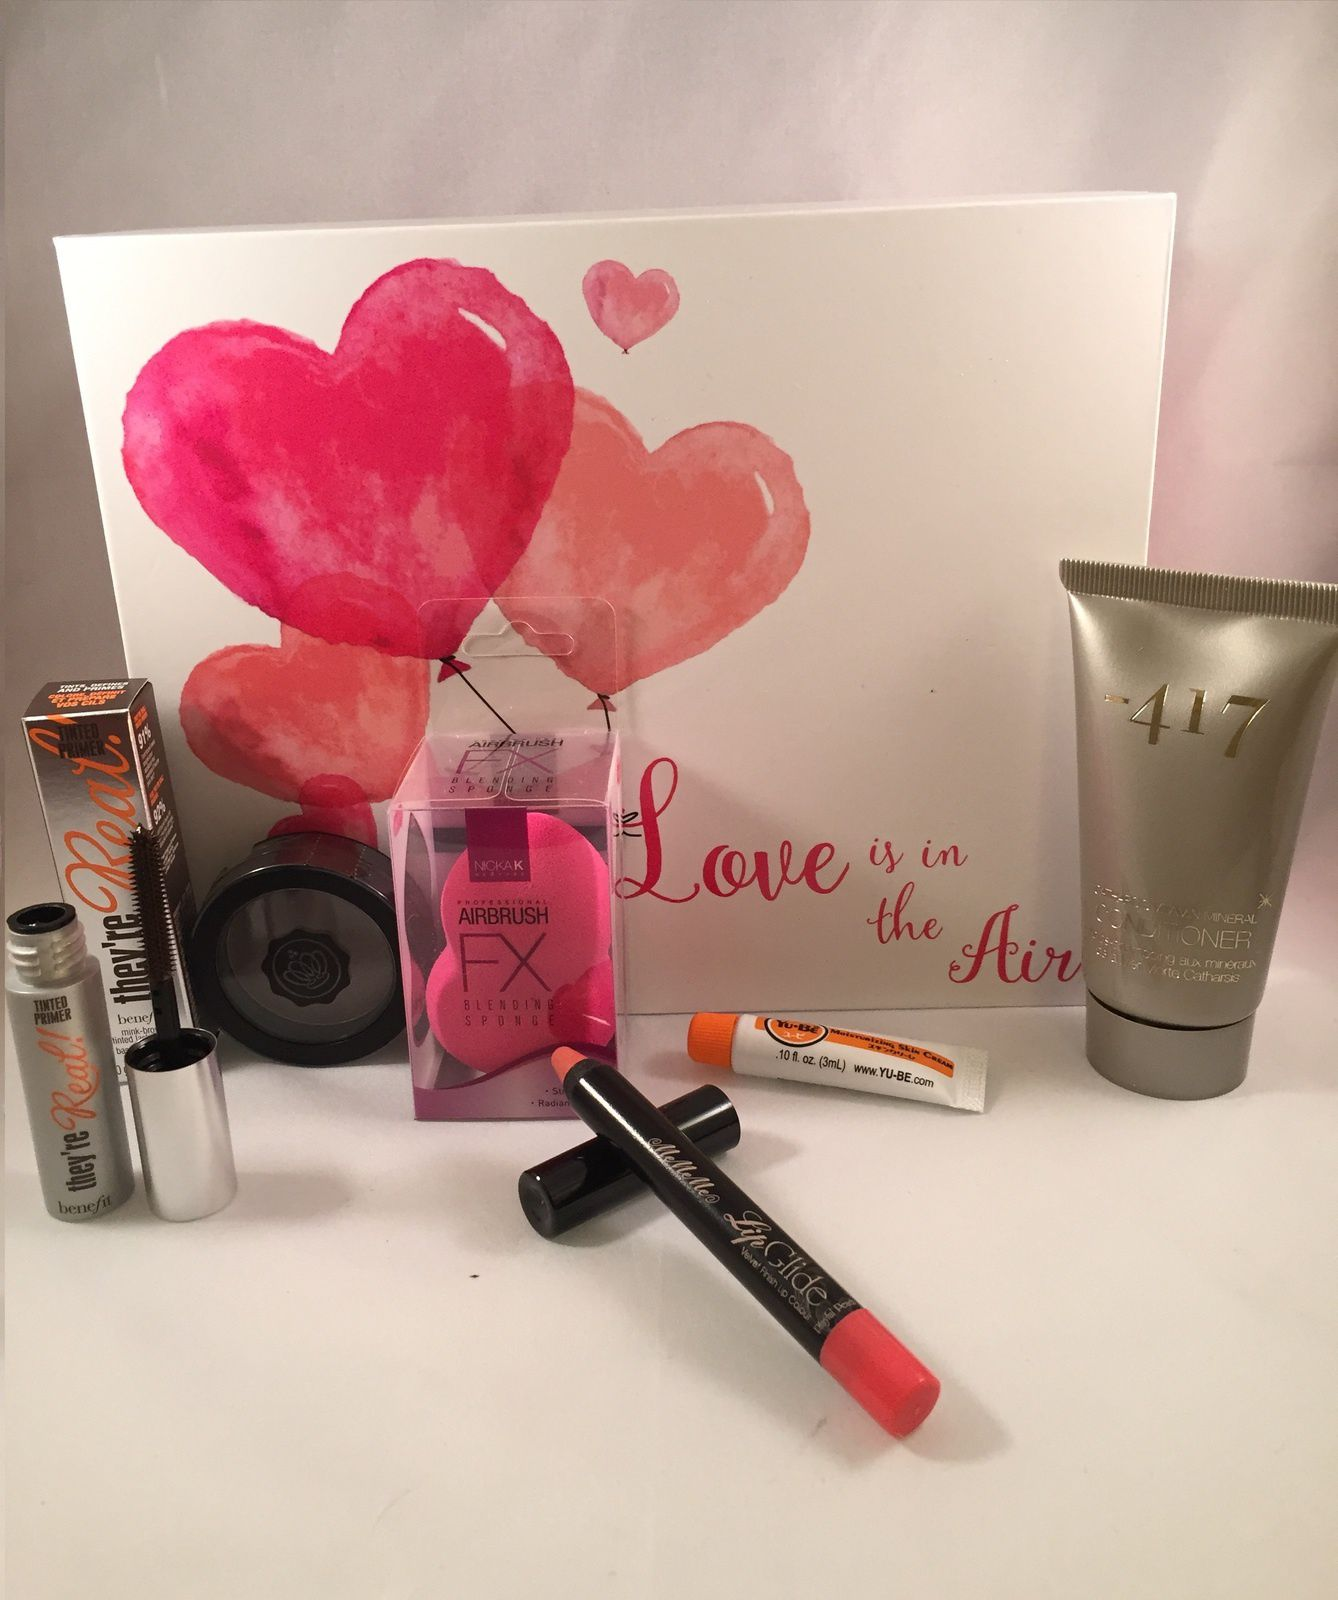 Love is in the air - Glossybox Février 2016